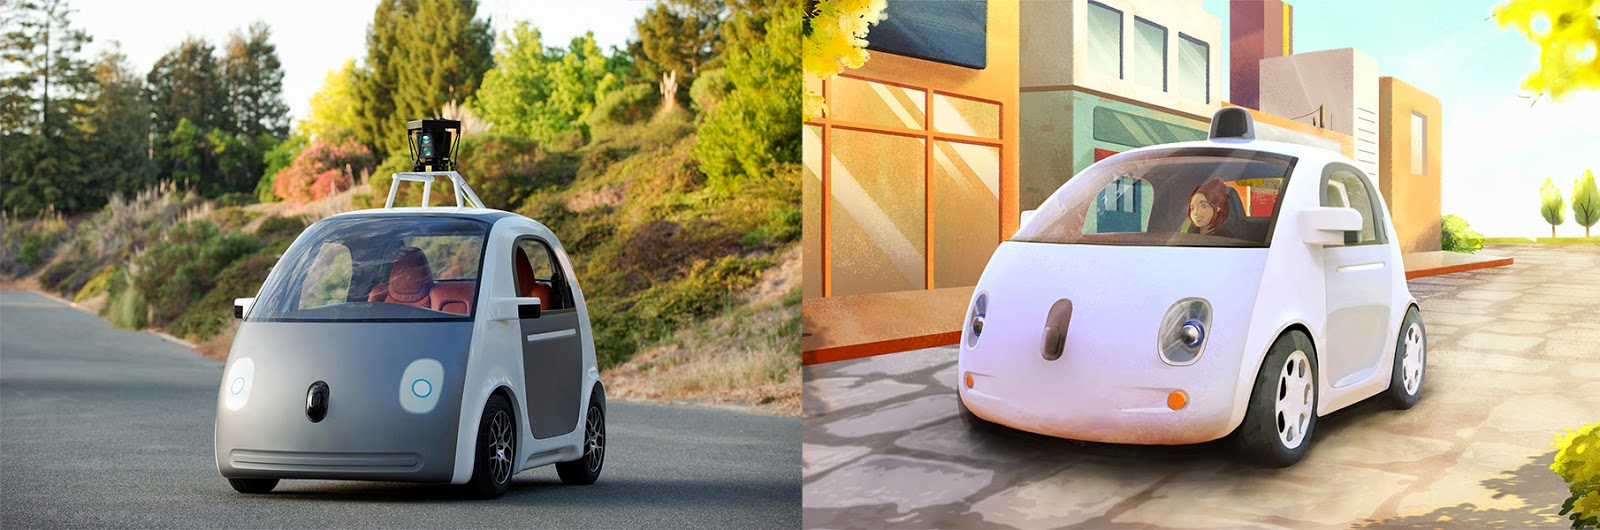 Google: Just press go: designing a self-driving vehicle